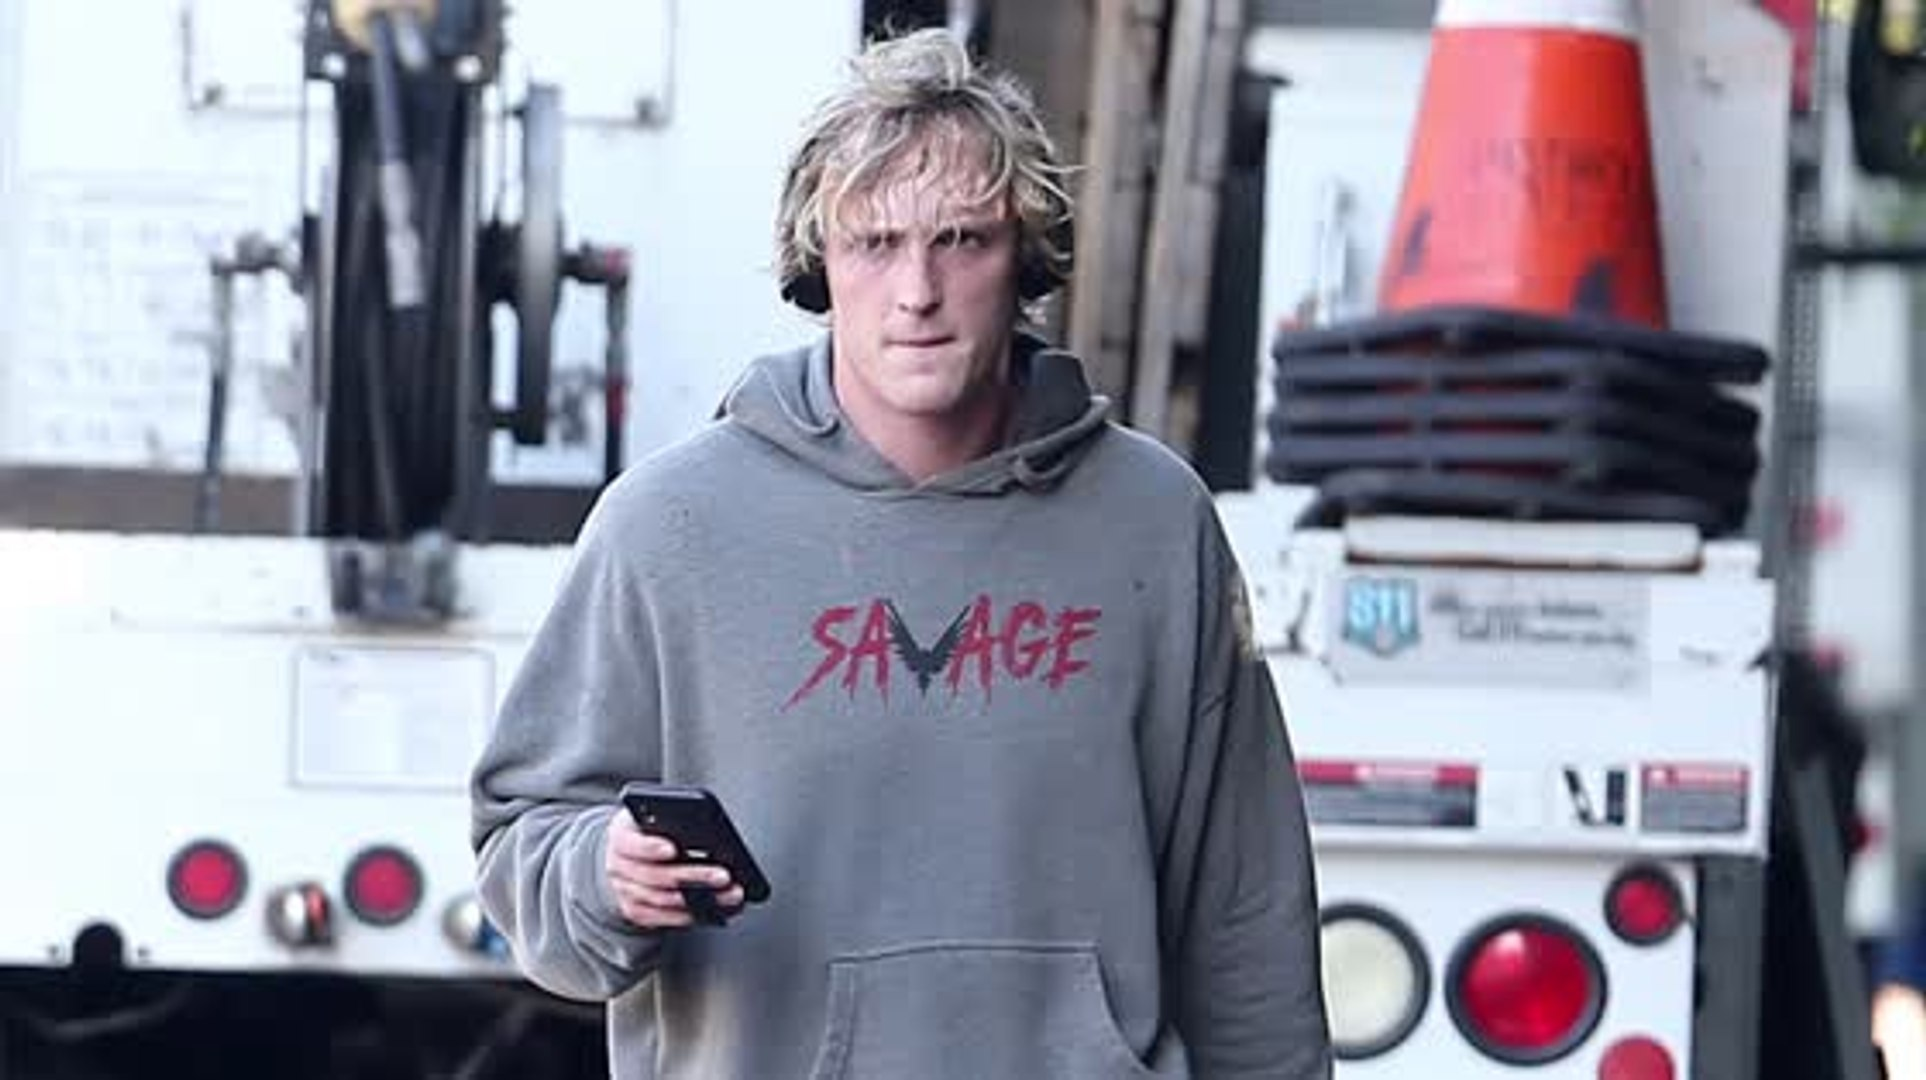 YouTube Cuts Ties with Logan Paul